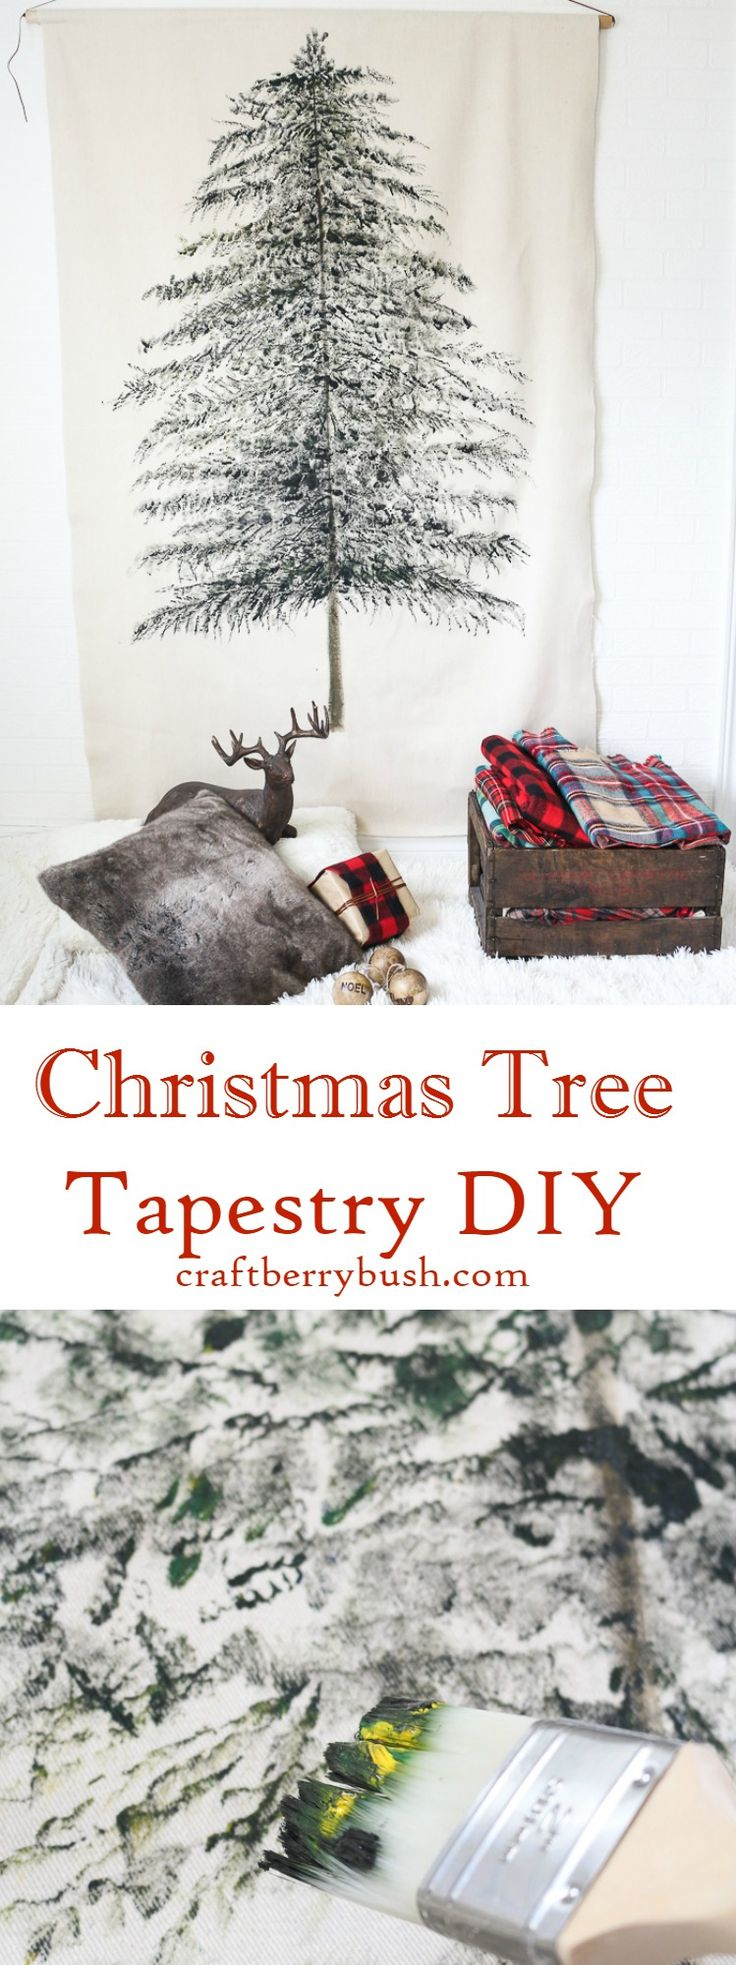 DIY Christmas Tree Tapestry from MichaelsMakers  Craftberrybush